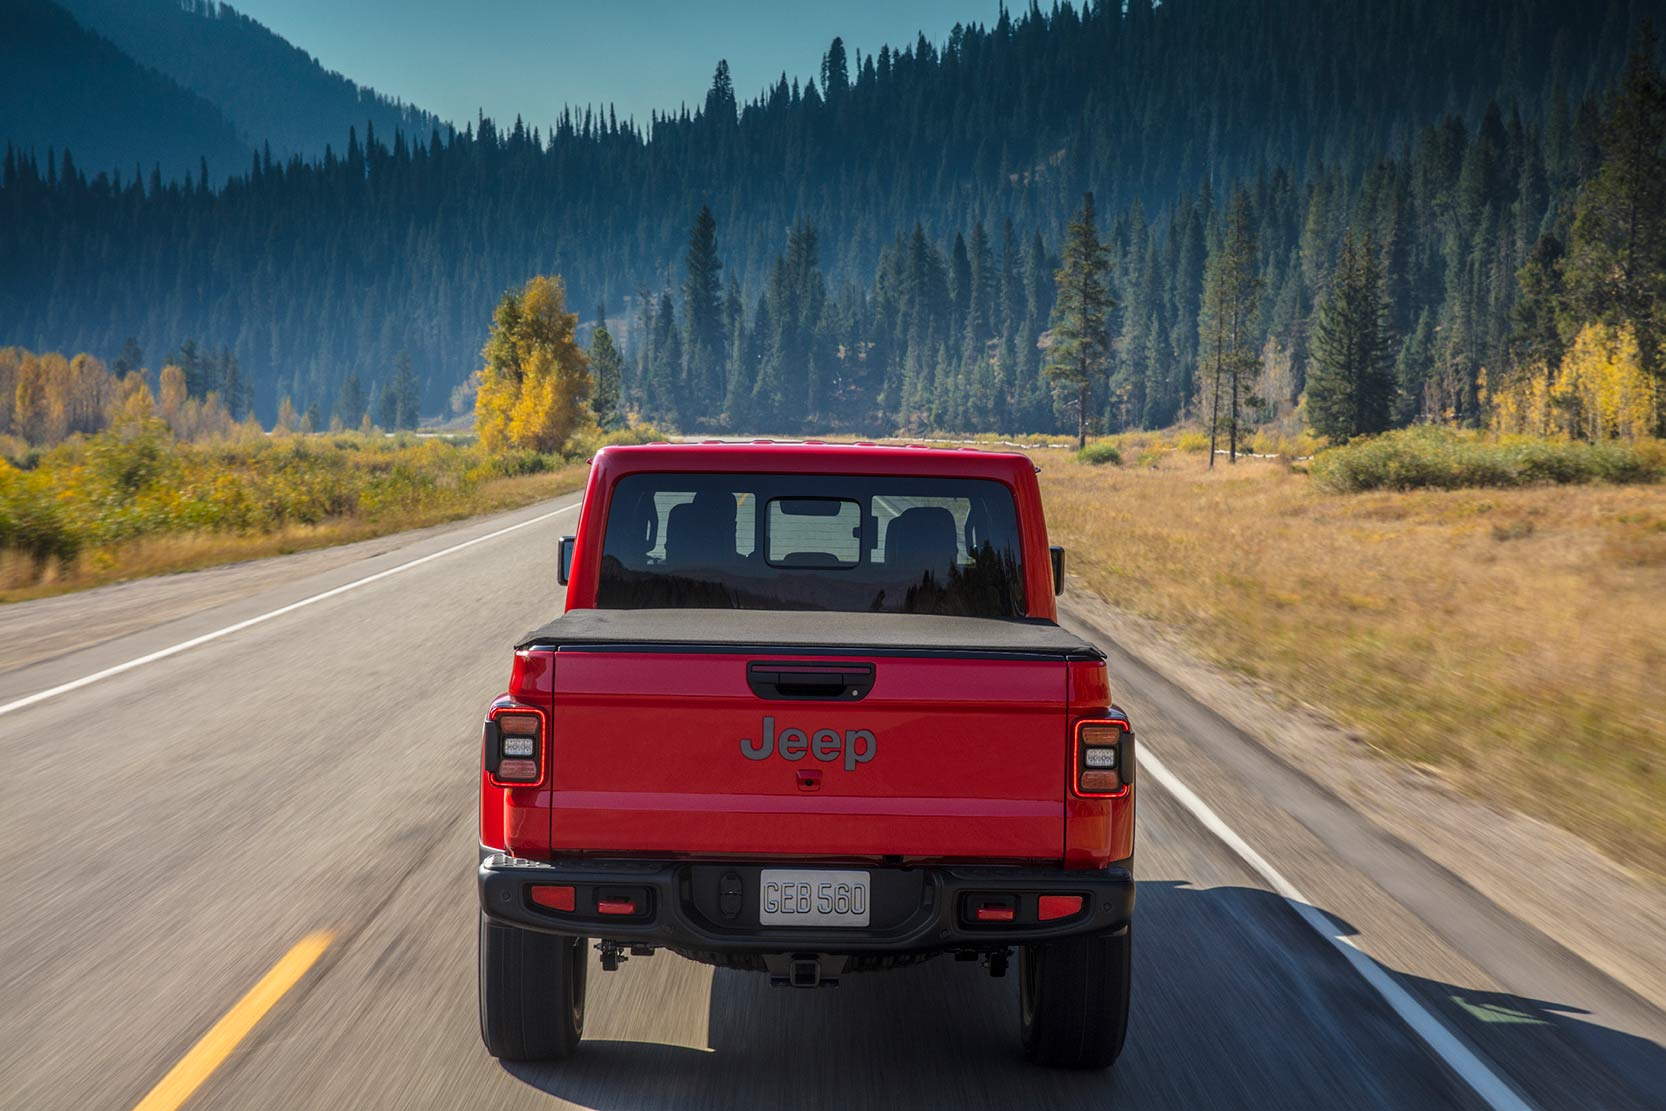 Exterieur_Jeep-Gladiator_58